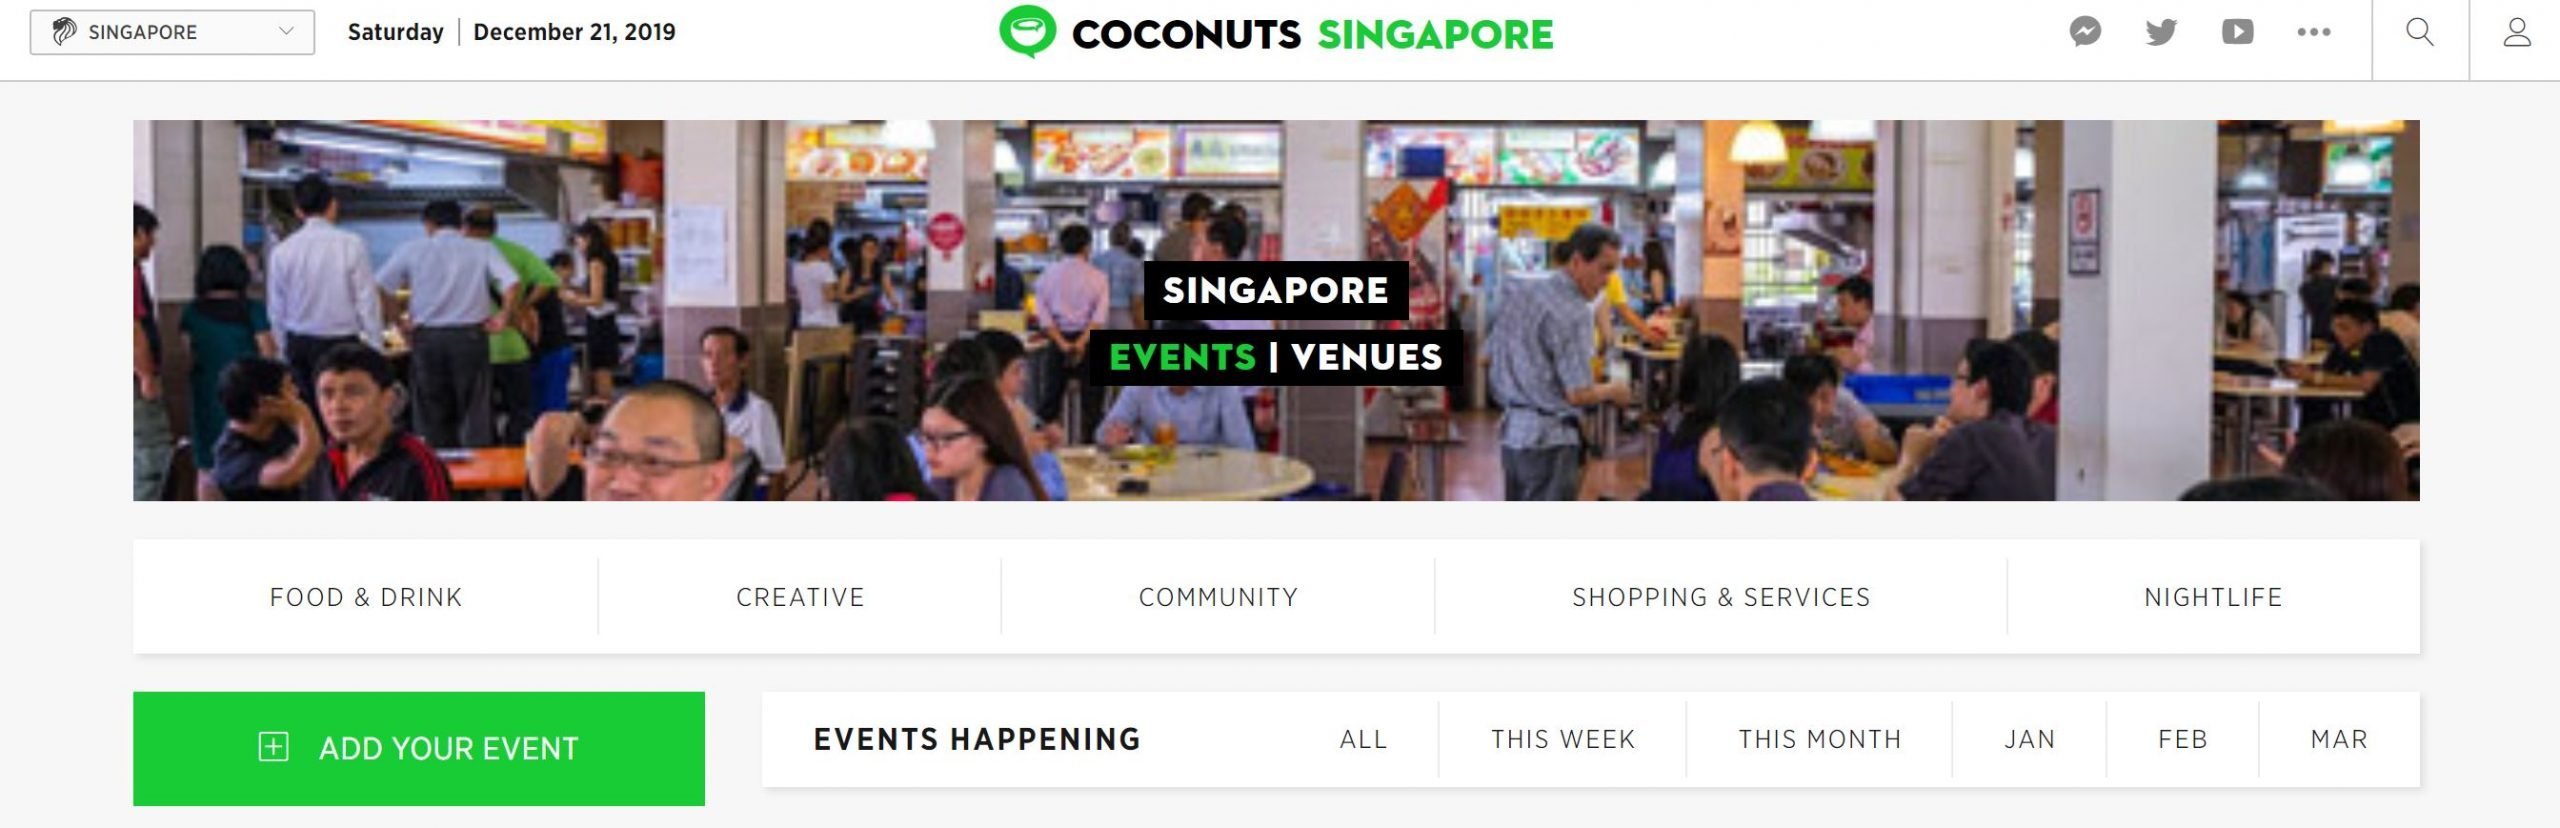 Coconuts Singapore